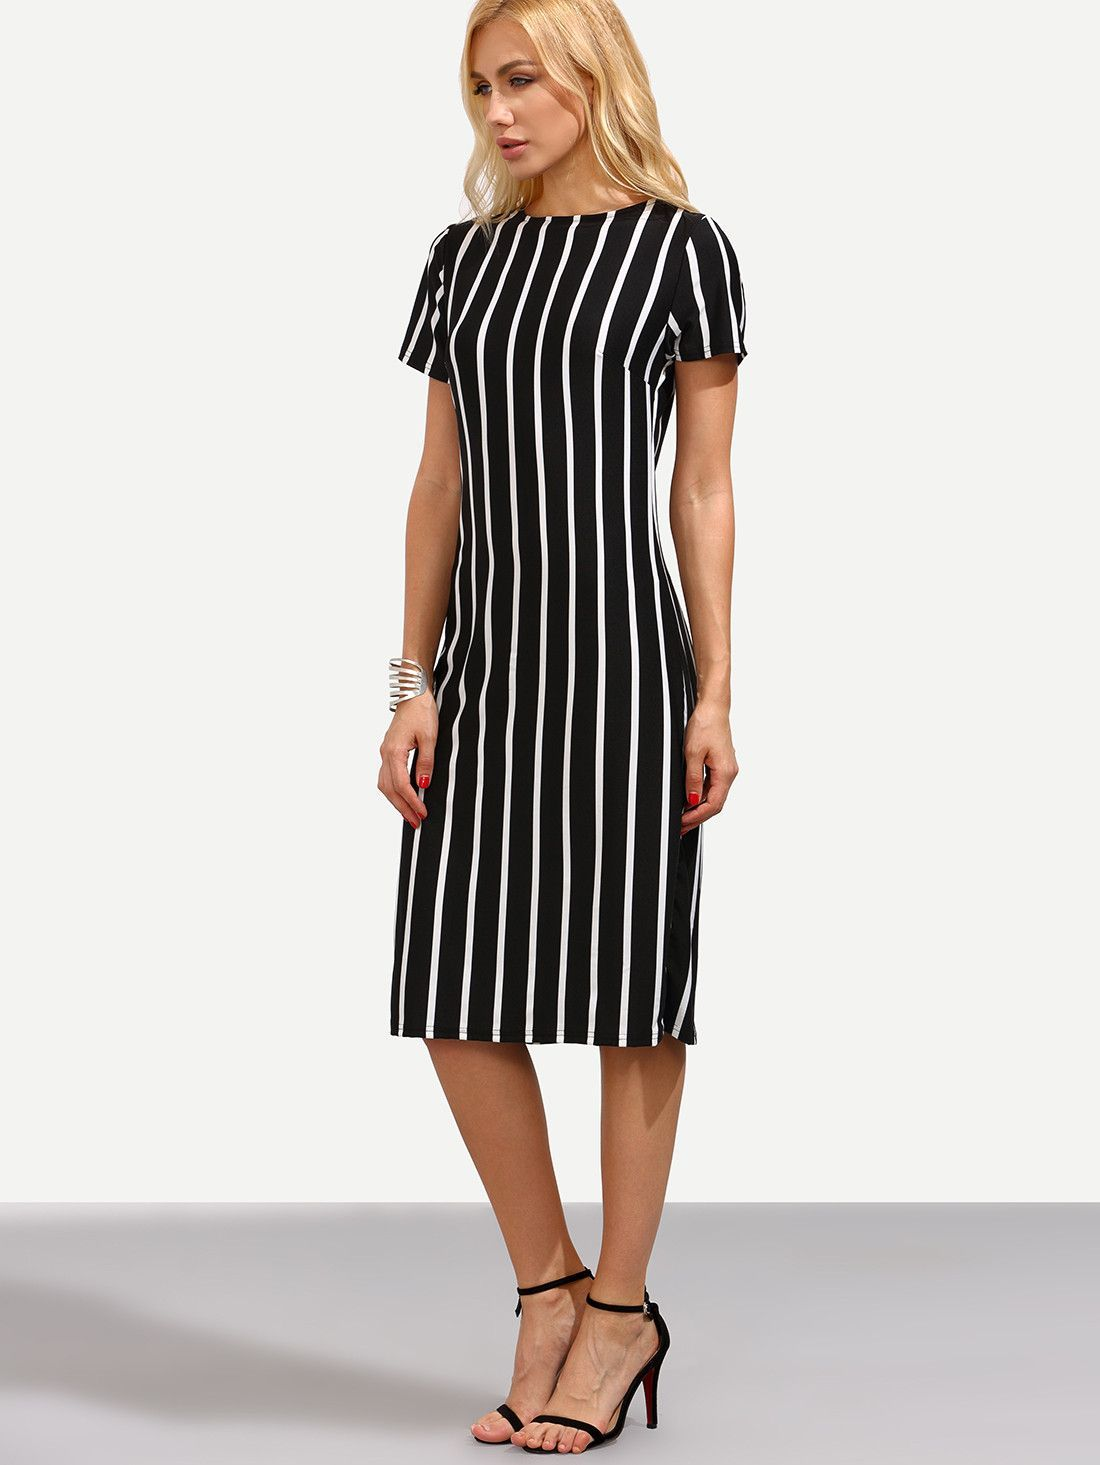 dbfe3ad5a4f Fabric  Fabric is very stretchy Season  Summer Type  Pencil Pattern Type  Striped  Sleeve Length  Short Sleeve Color  Black Dresses Length  Midi Style  Work  ...